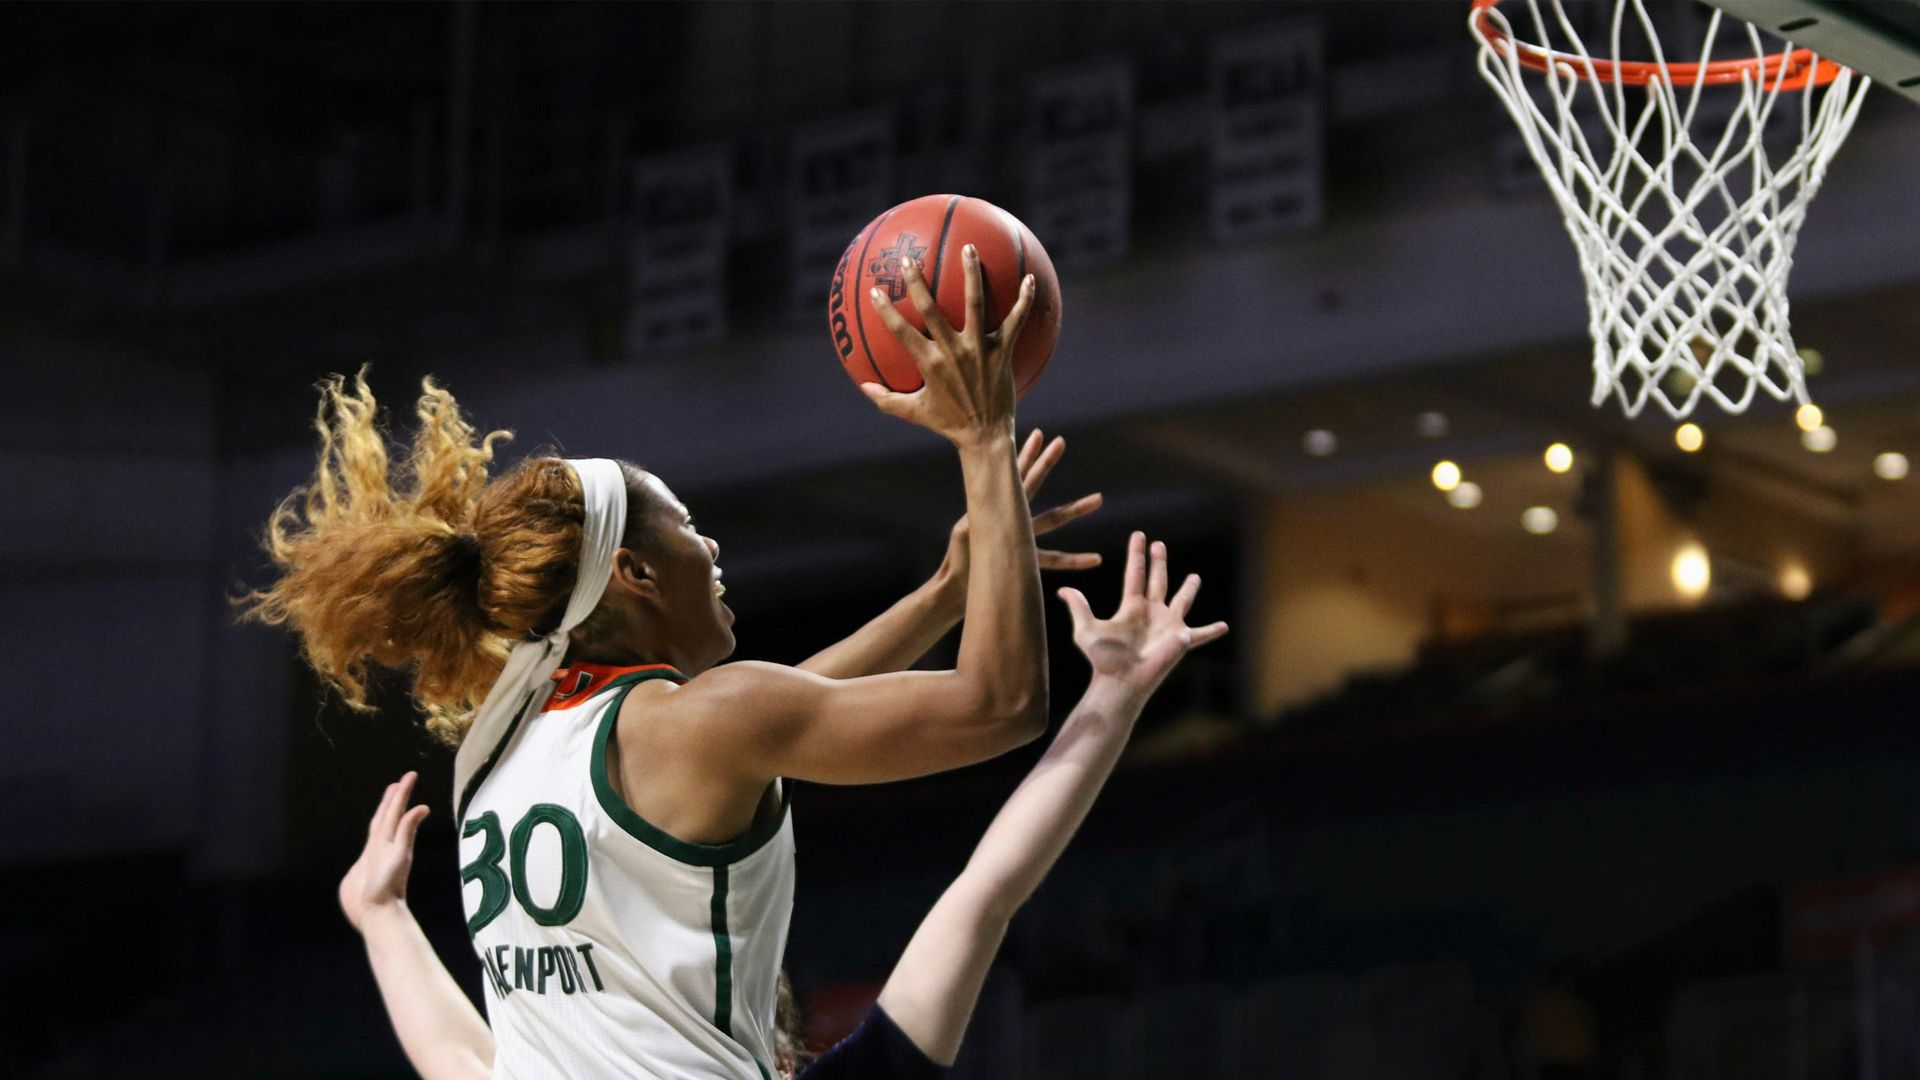 Davenport Leads WBB to Win over UNO